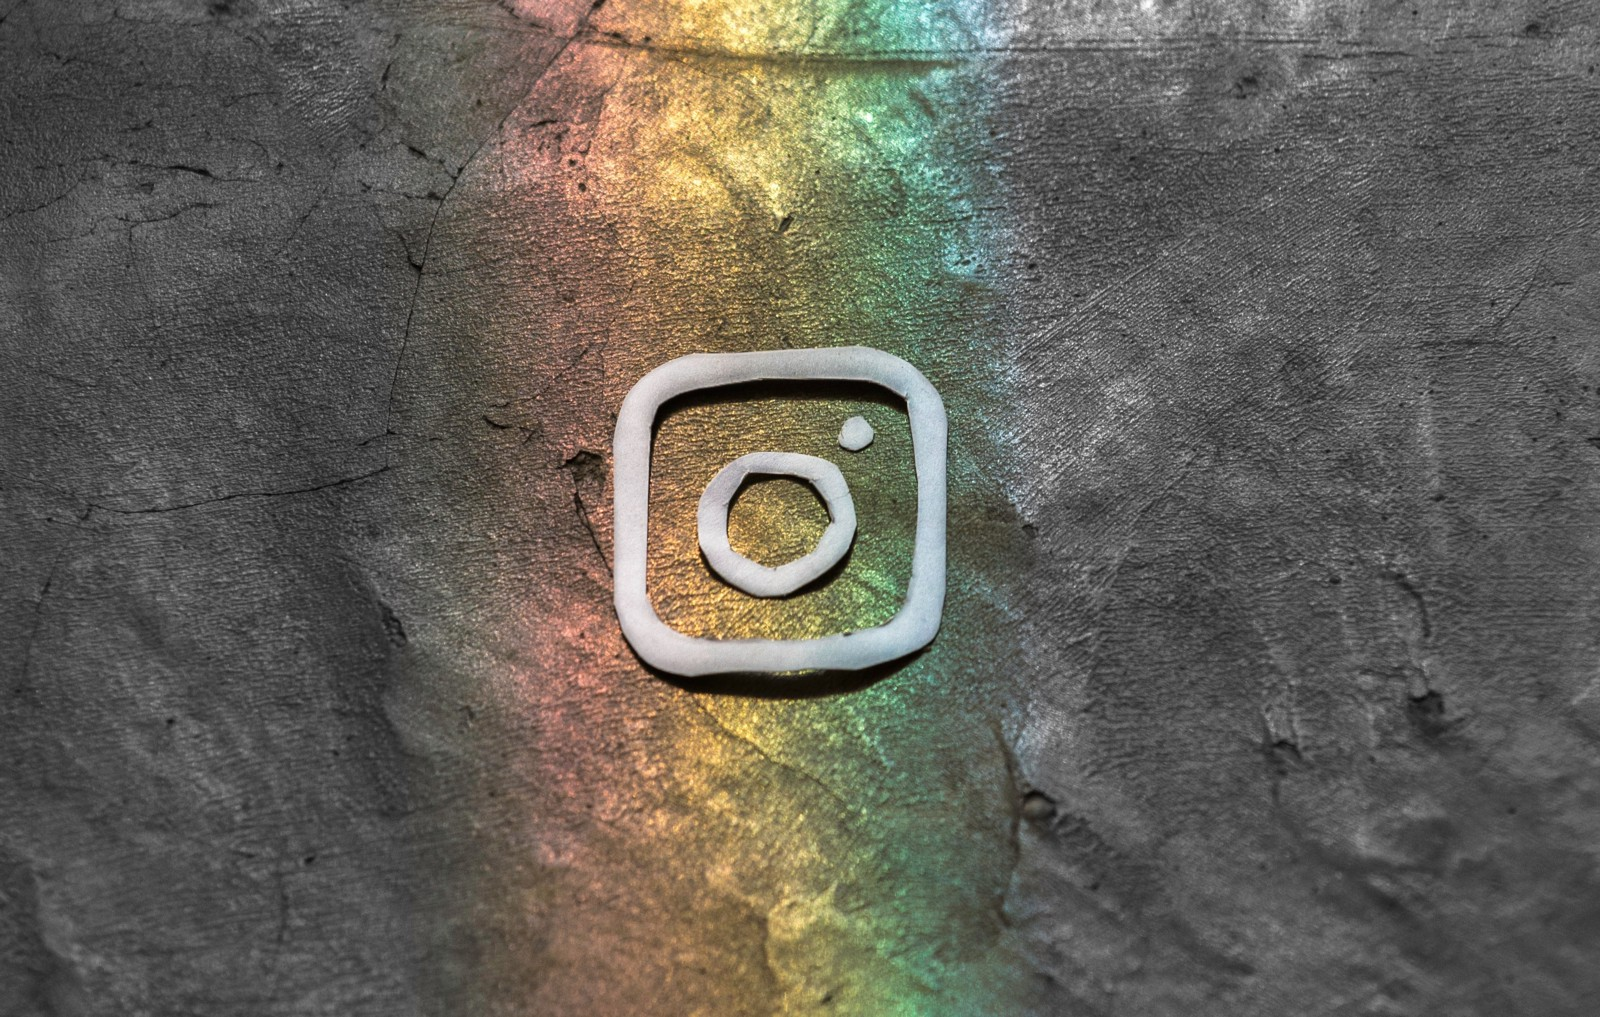 INSTAGRAM HACKED 2019 - How to Secure Your Instagram Account to